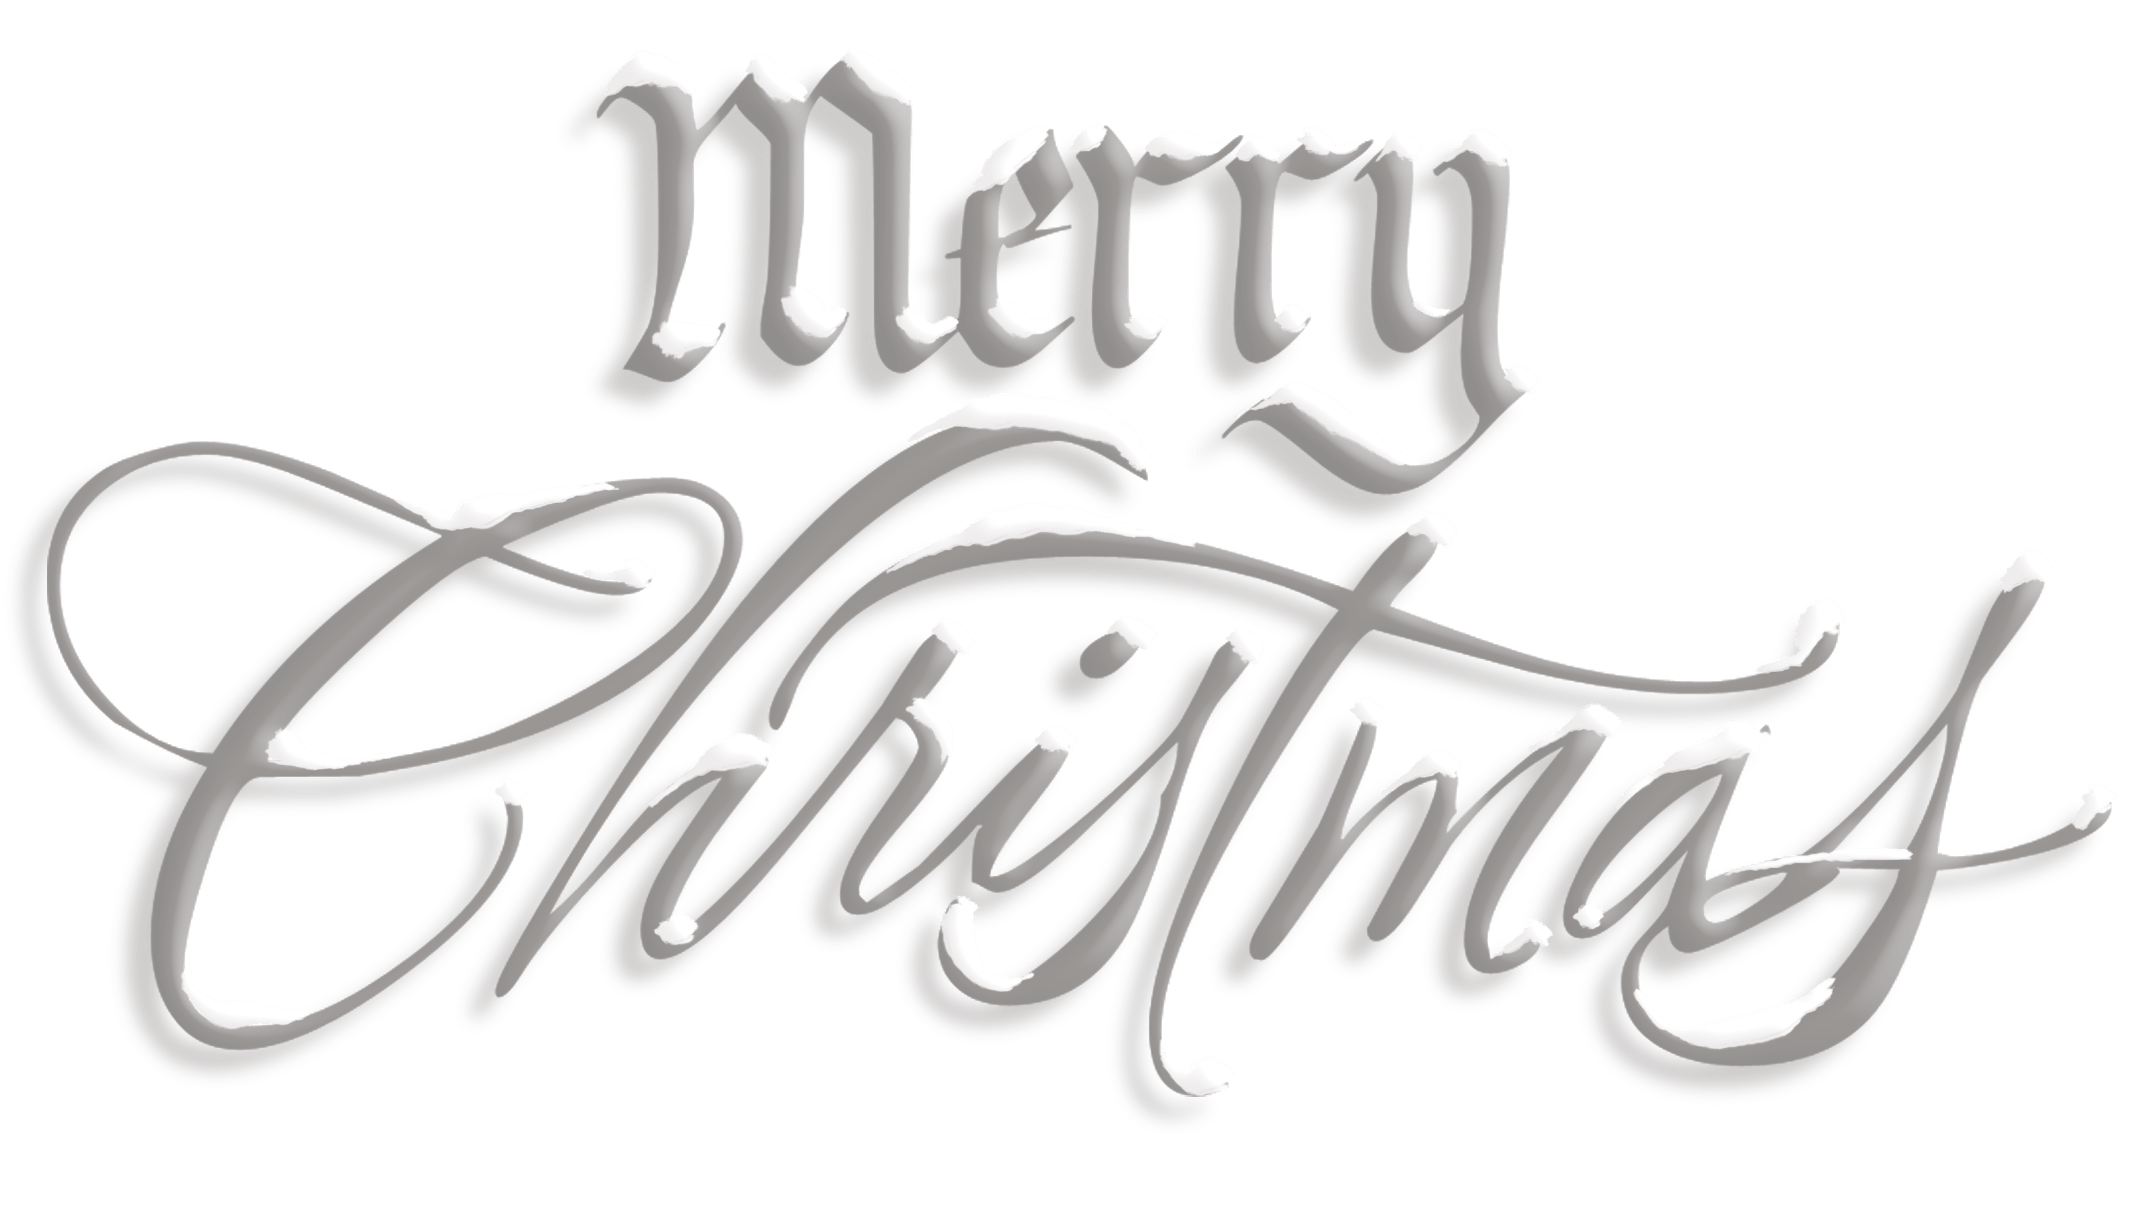 Free clipart merry christmas text image free library Merry Christmas Gold Red Text transparent PNG - StickPNG image free library